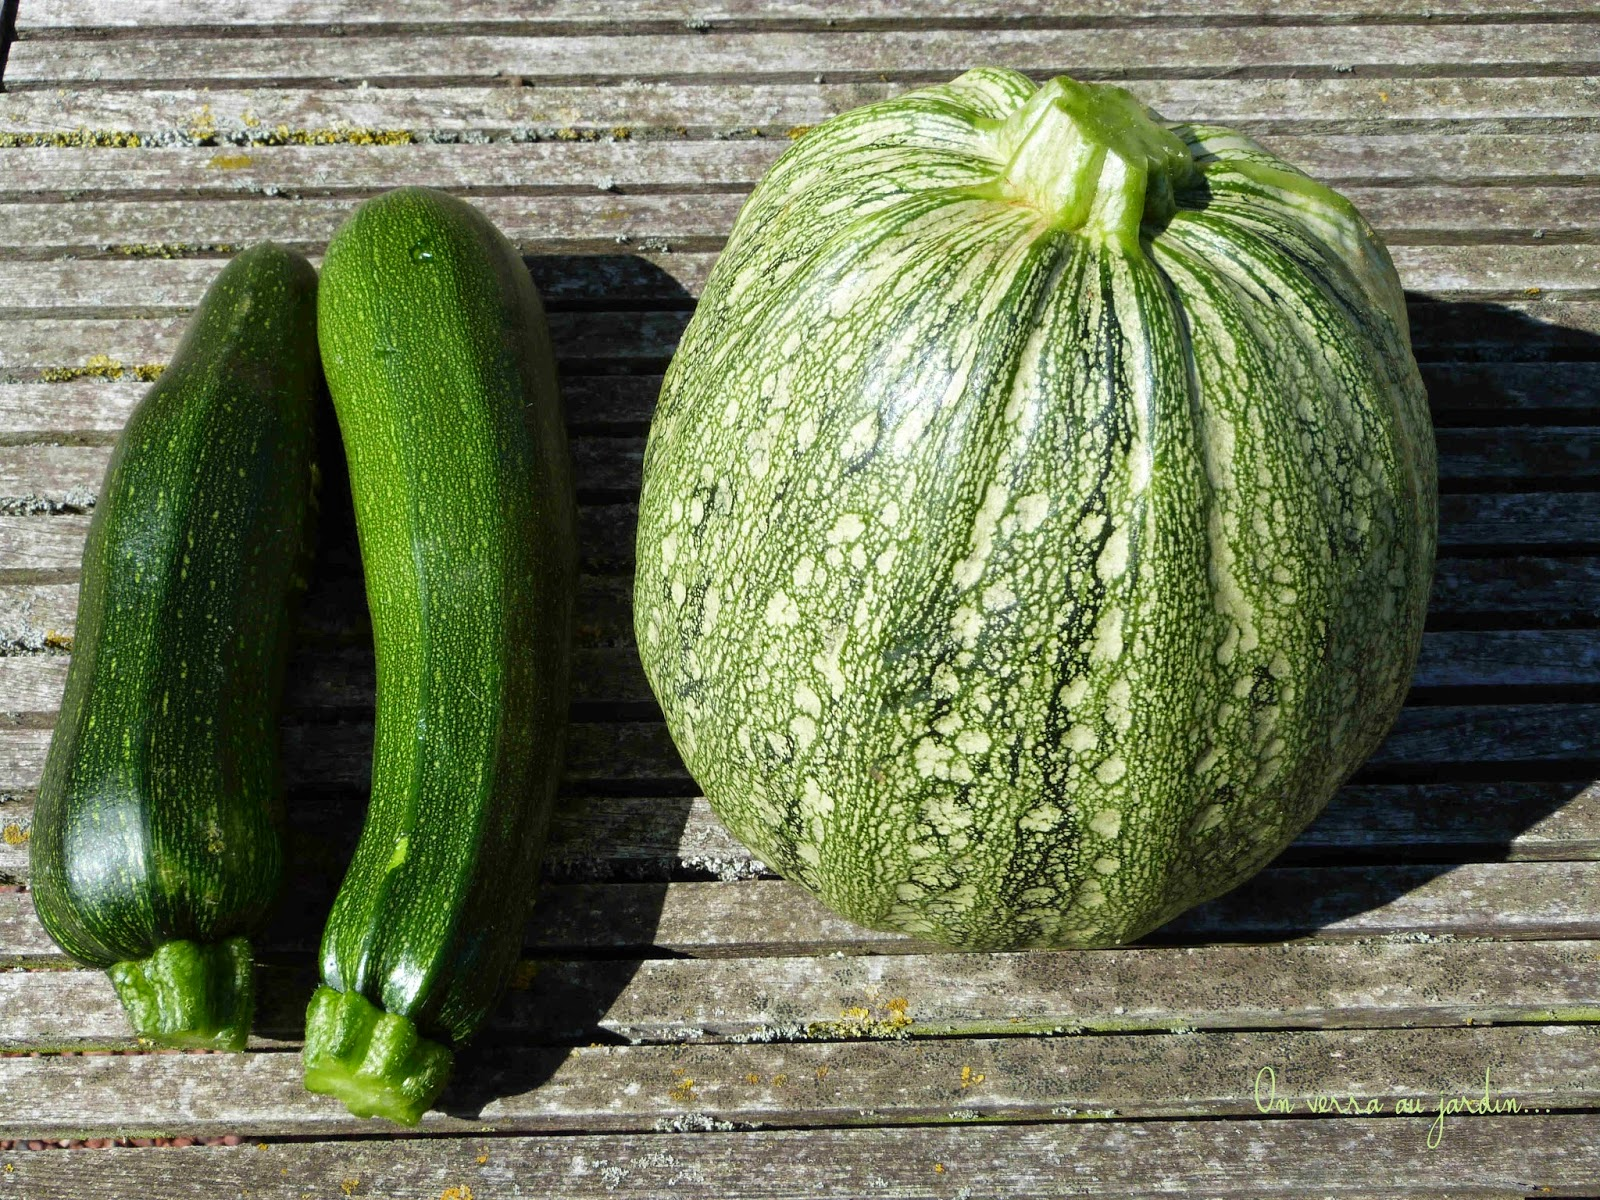 Nice Quand Semer Les Courgettes #13: Good Quand Semer Les Courgettes #8: Courgettes.jpg